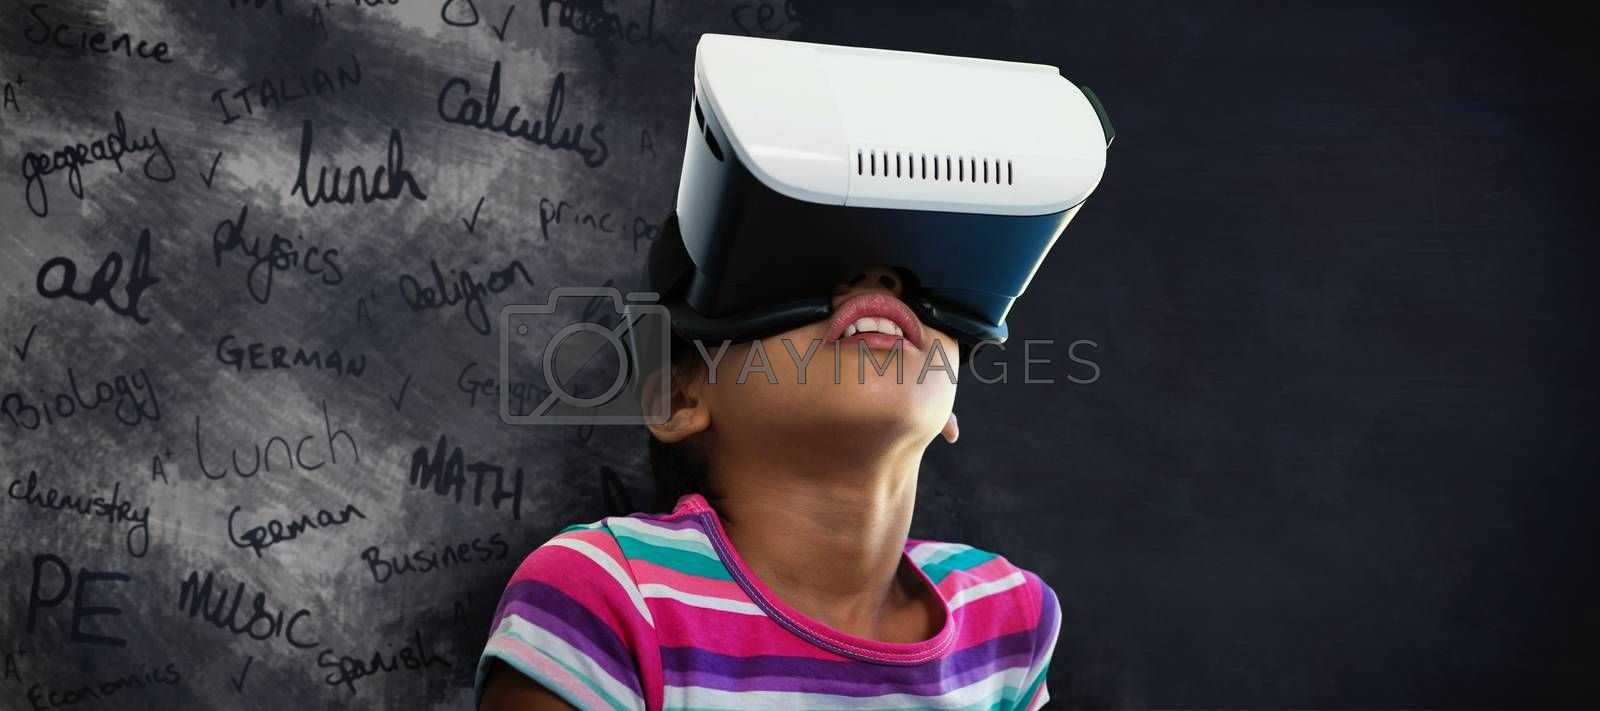 Composite image of close up of girl using virtual reality simulator by Wavebreakmedia